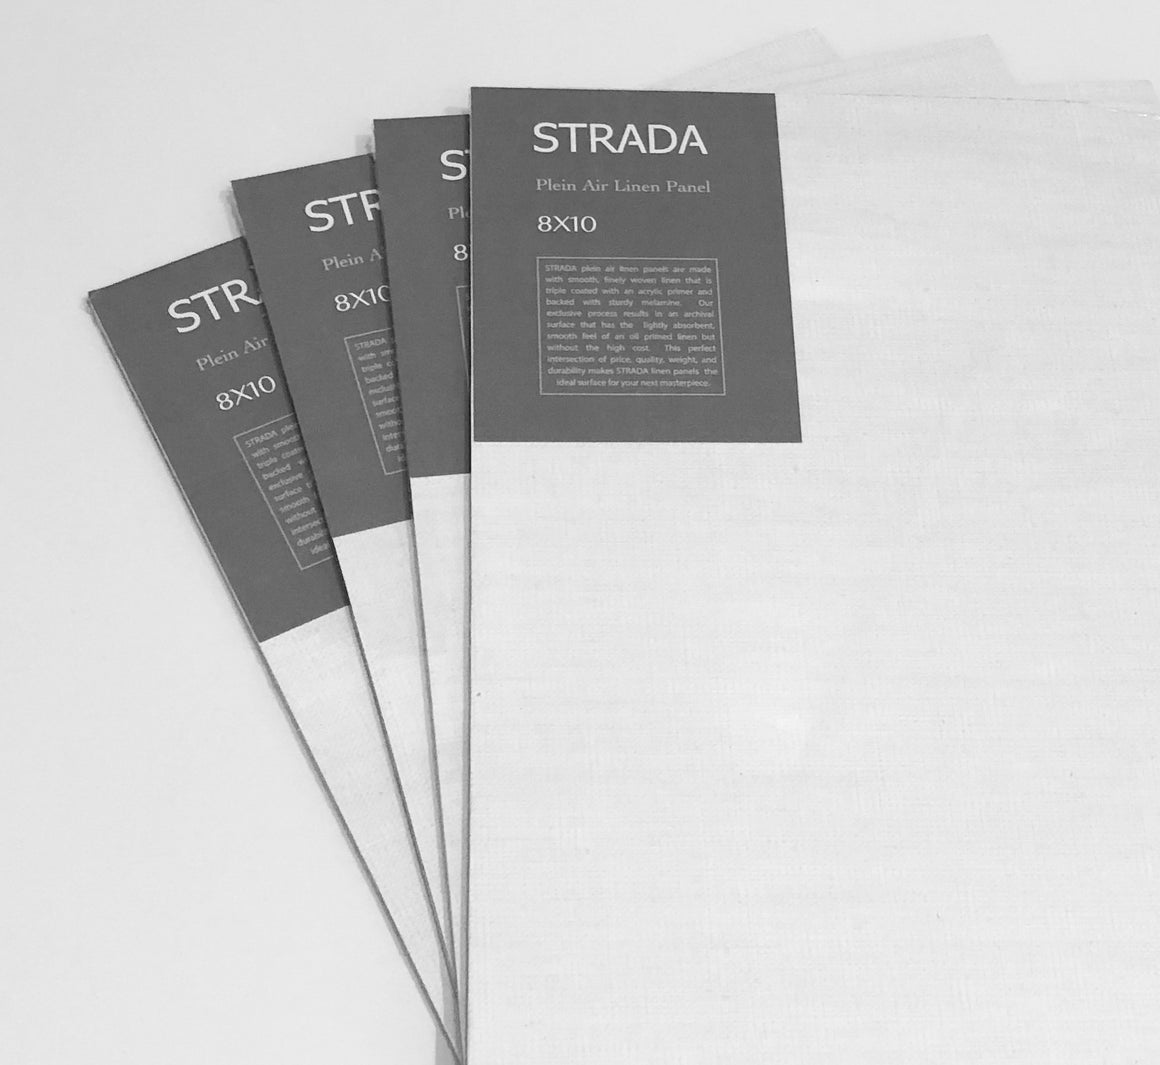 STRADA triple primed linen panels with slight warping